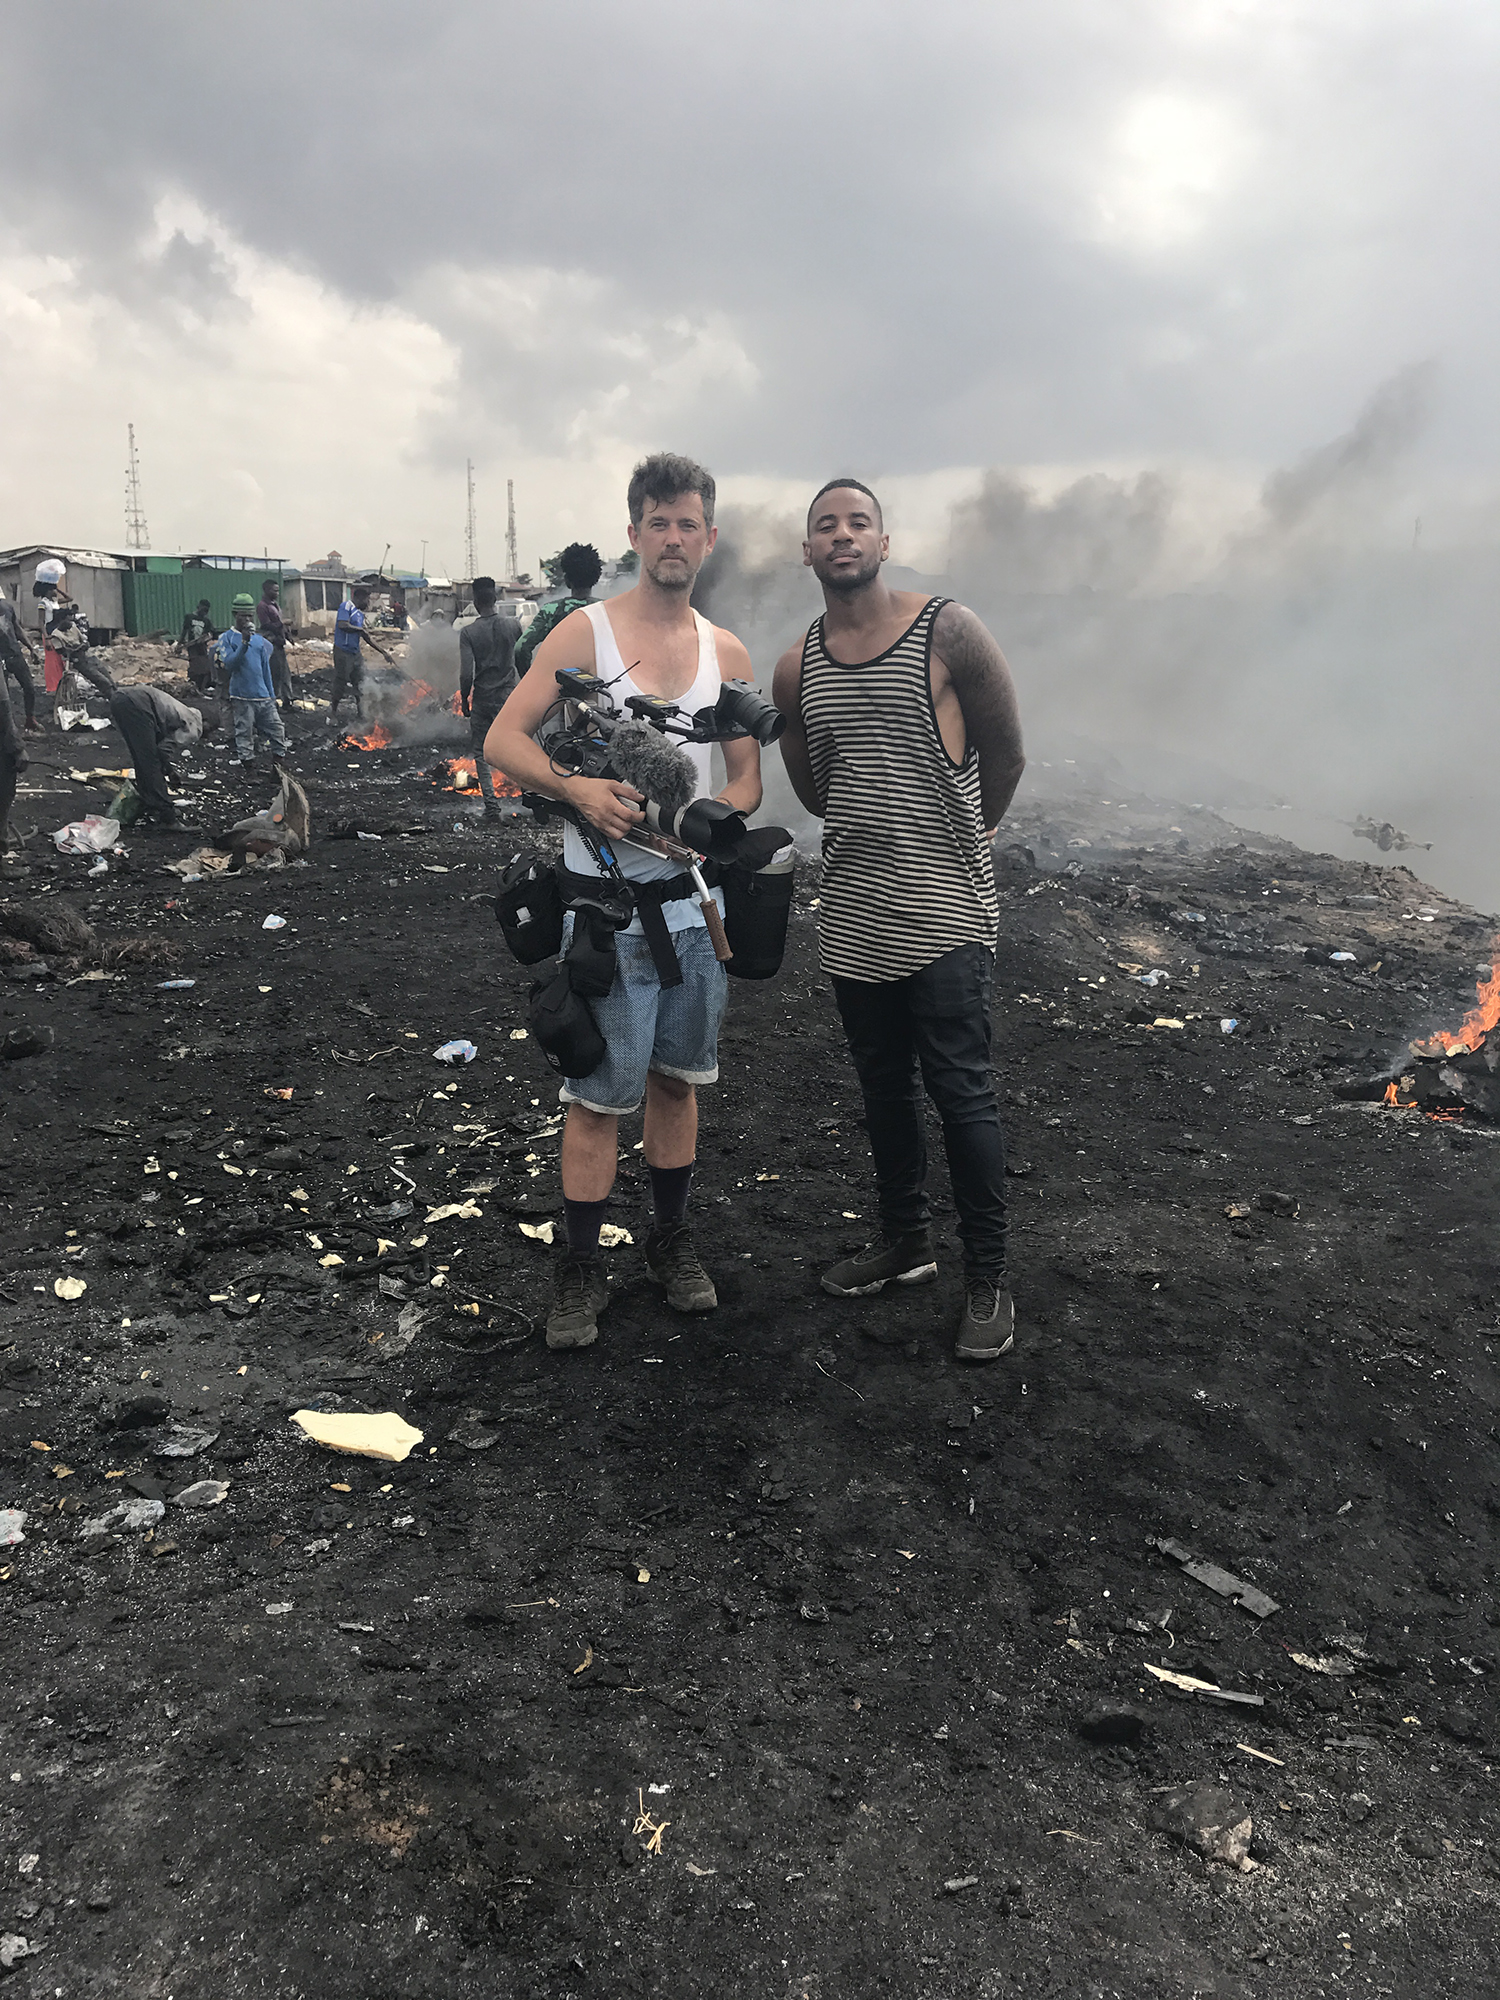 Sam Wilkinson and Reggie Yates on a waste dump in Ghana.